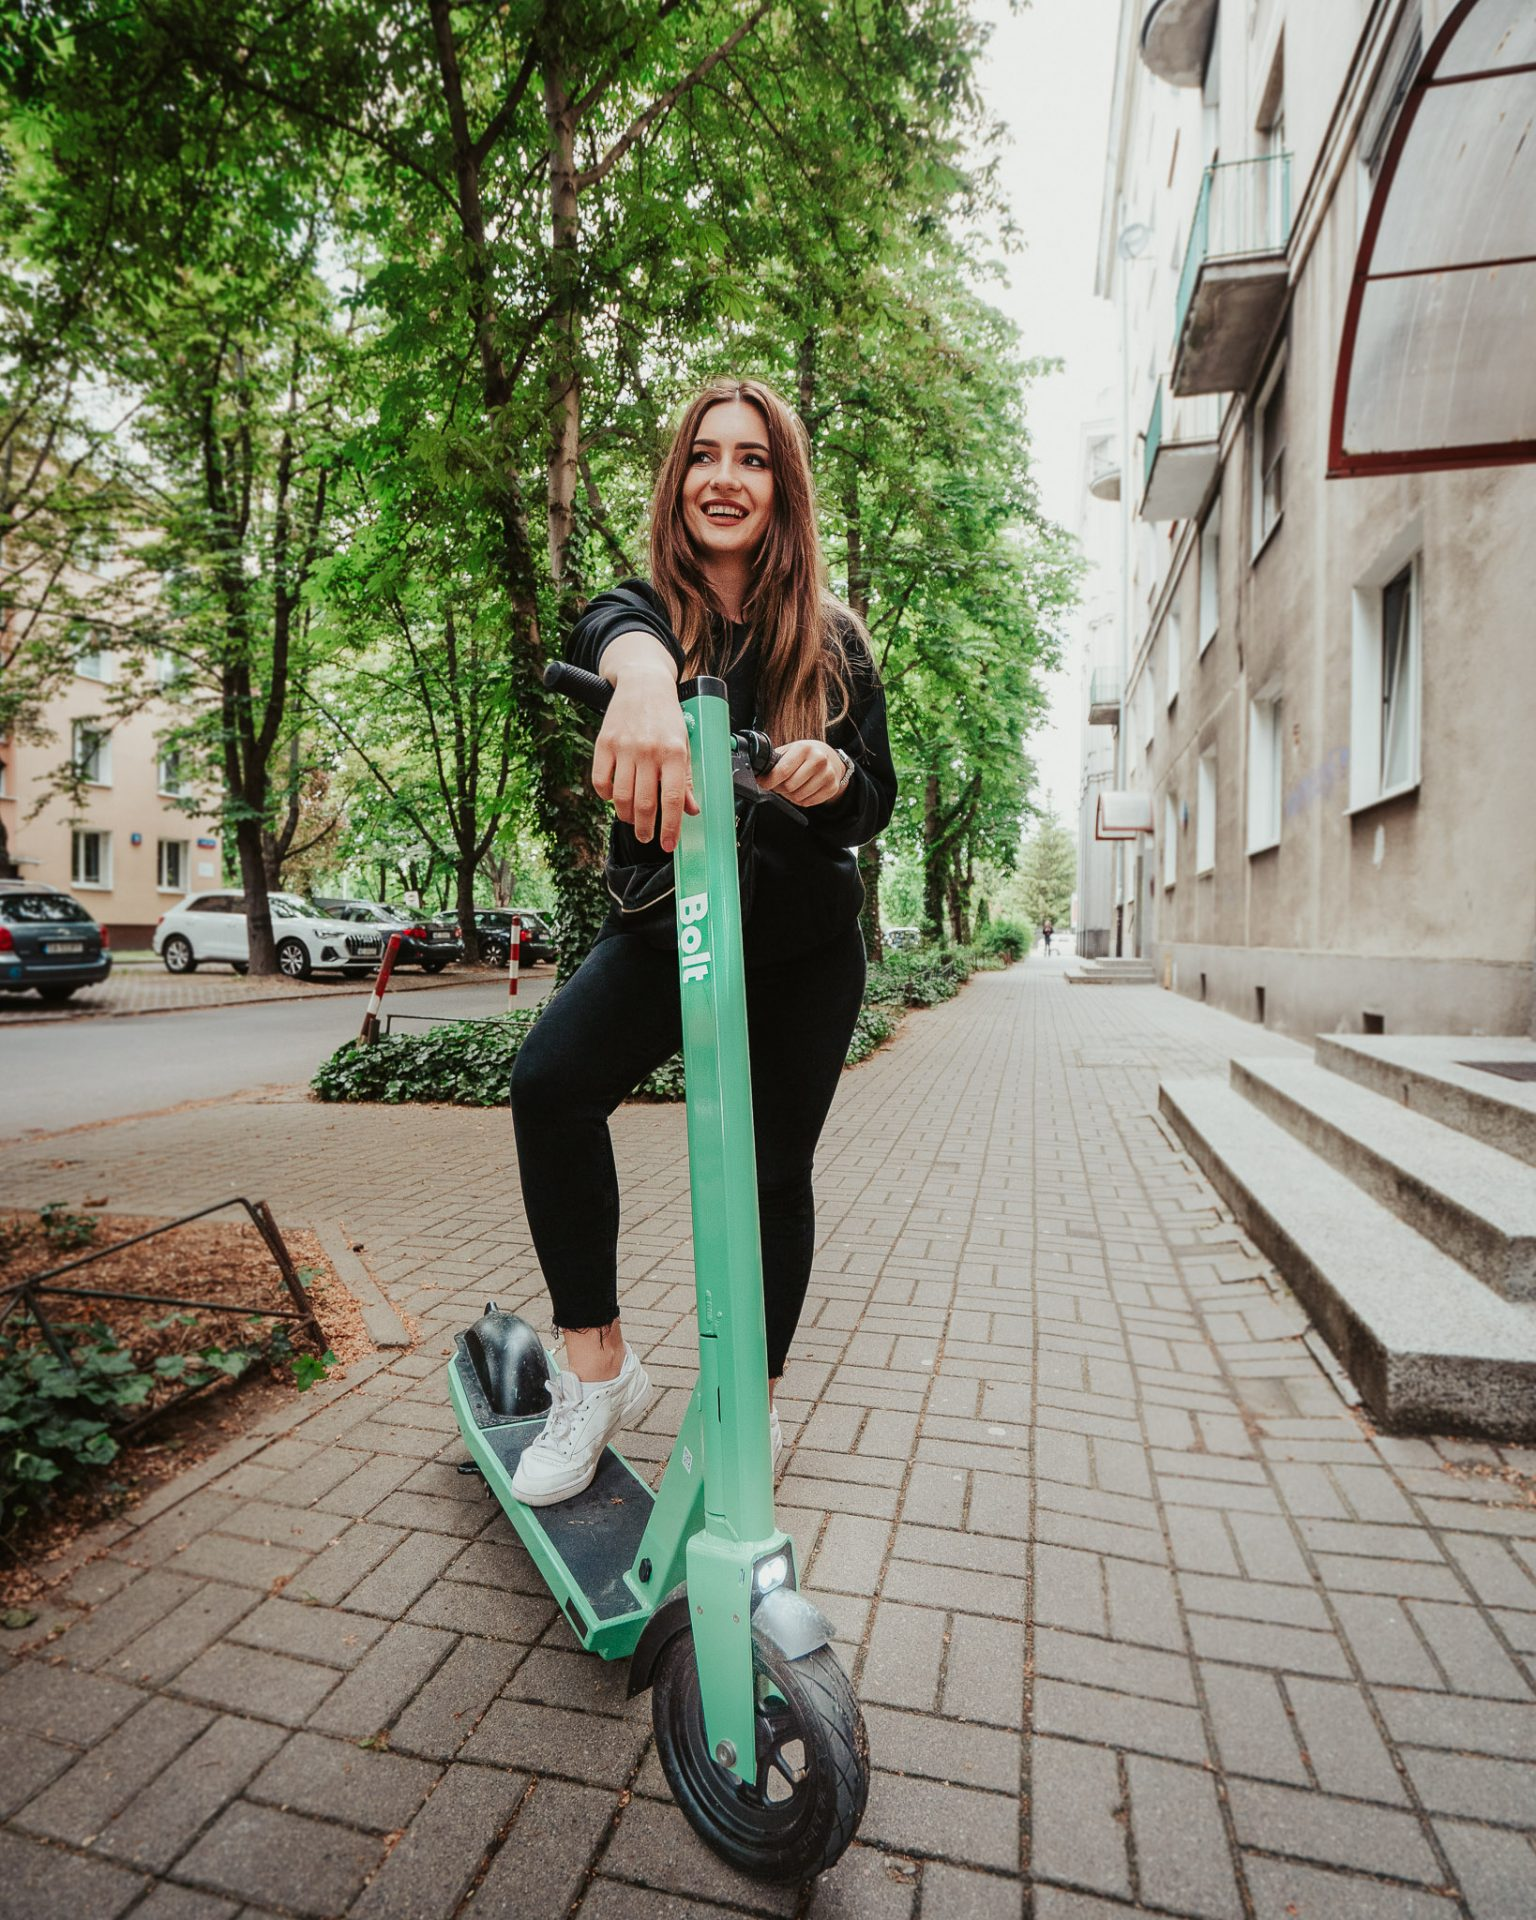 @aga.trawinska, Bolt's custom-built e-scooter